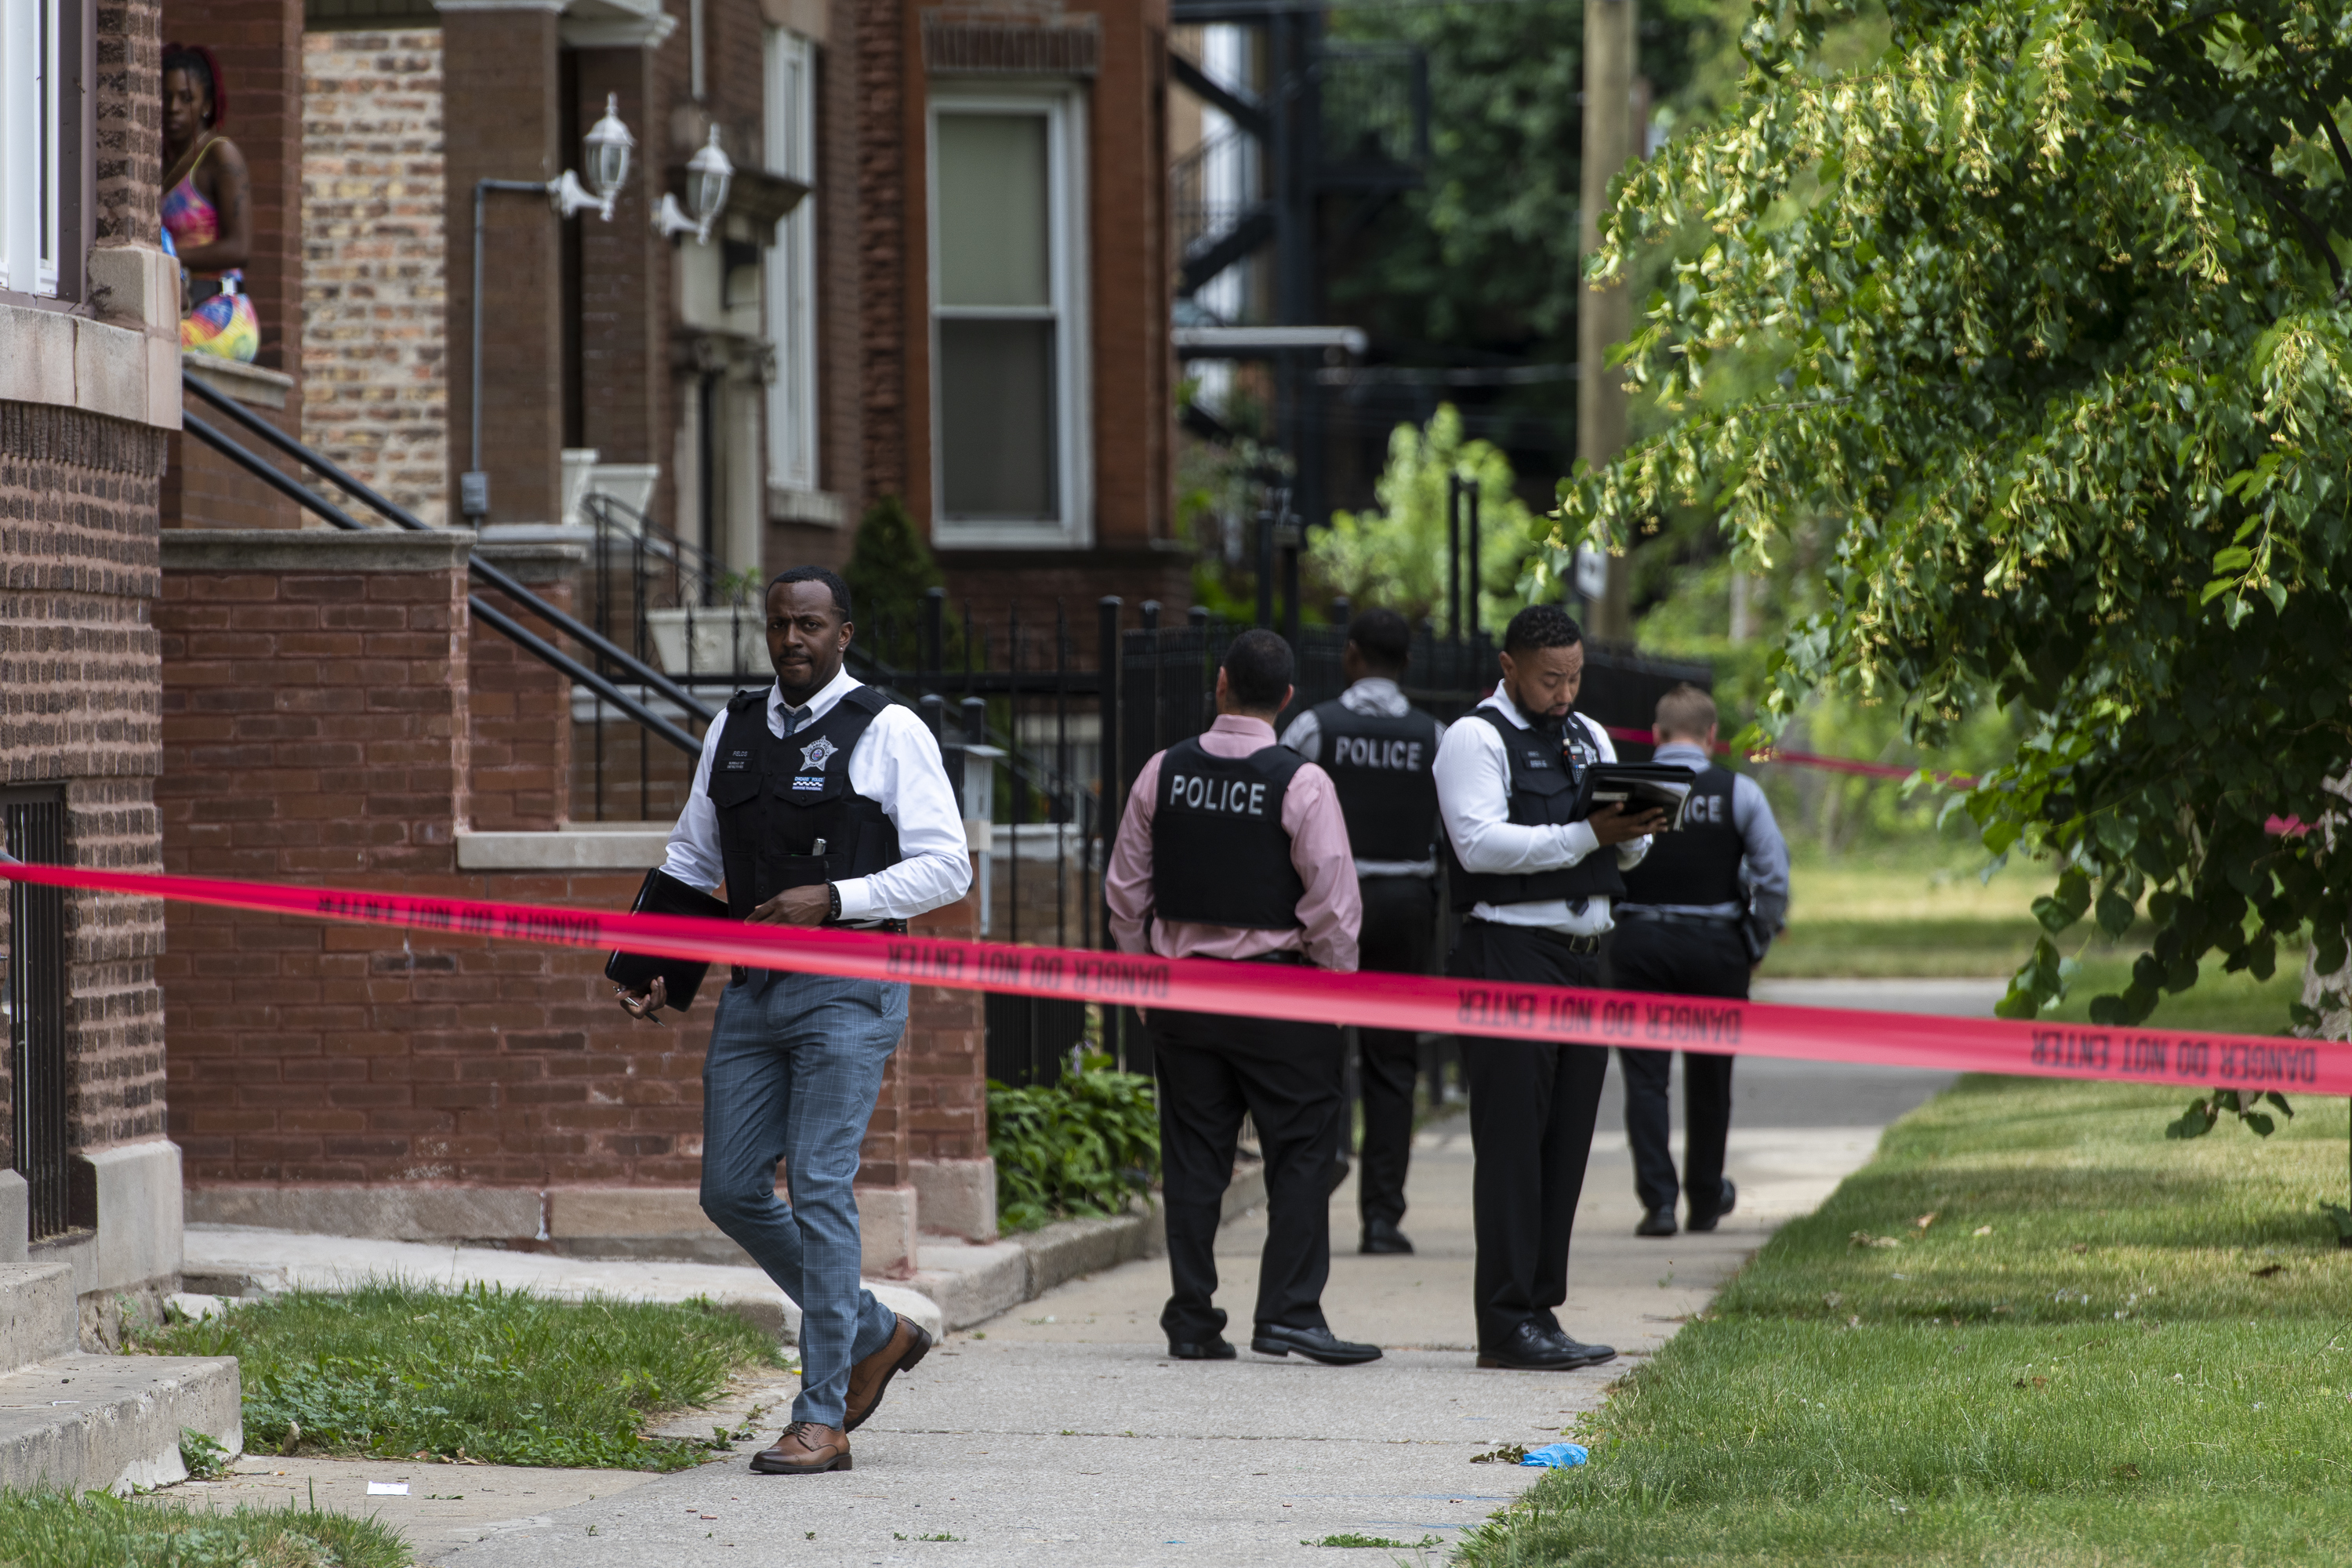 Chicago police work the scene where two people were shot, including a 4-year-old boy and a 17-year-old boy, in the 6500 block of South Ellis Avenue, Monday, June 21, 2021.